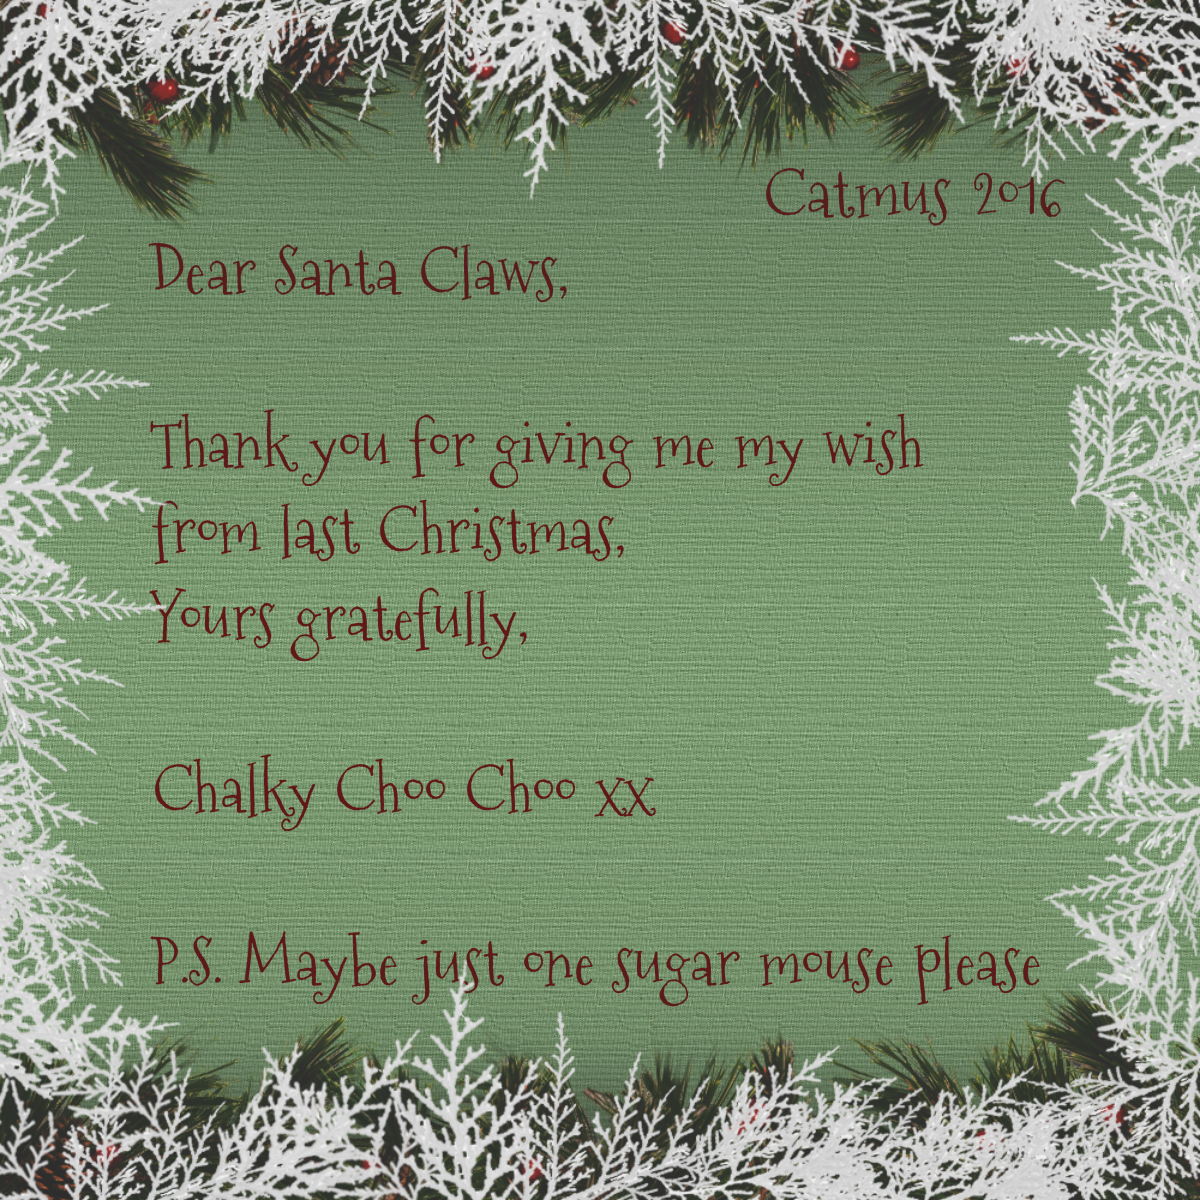 Chalky's letter to Santa Claws